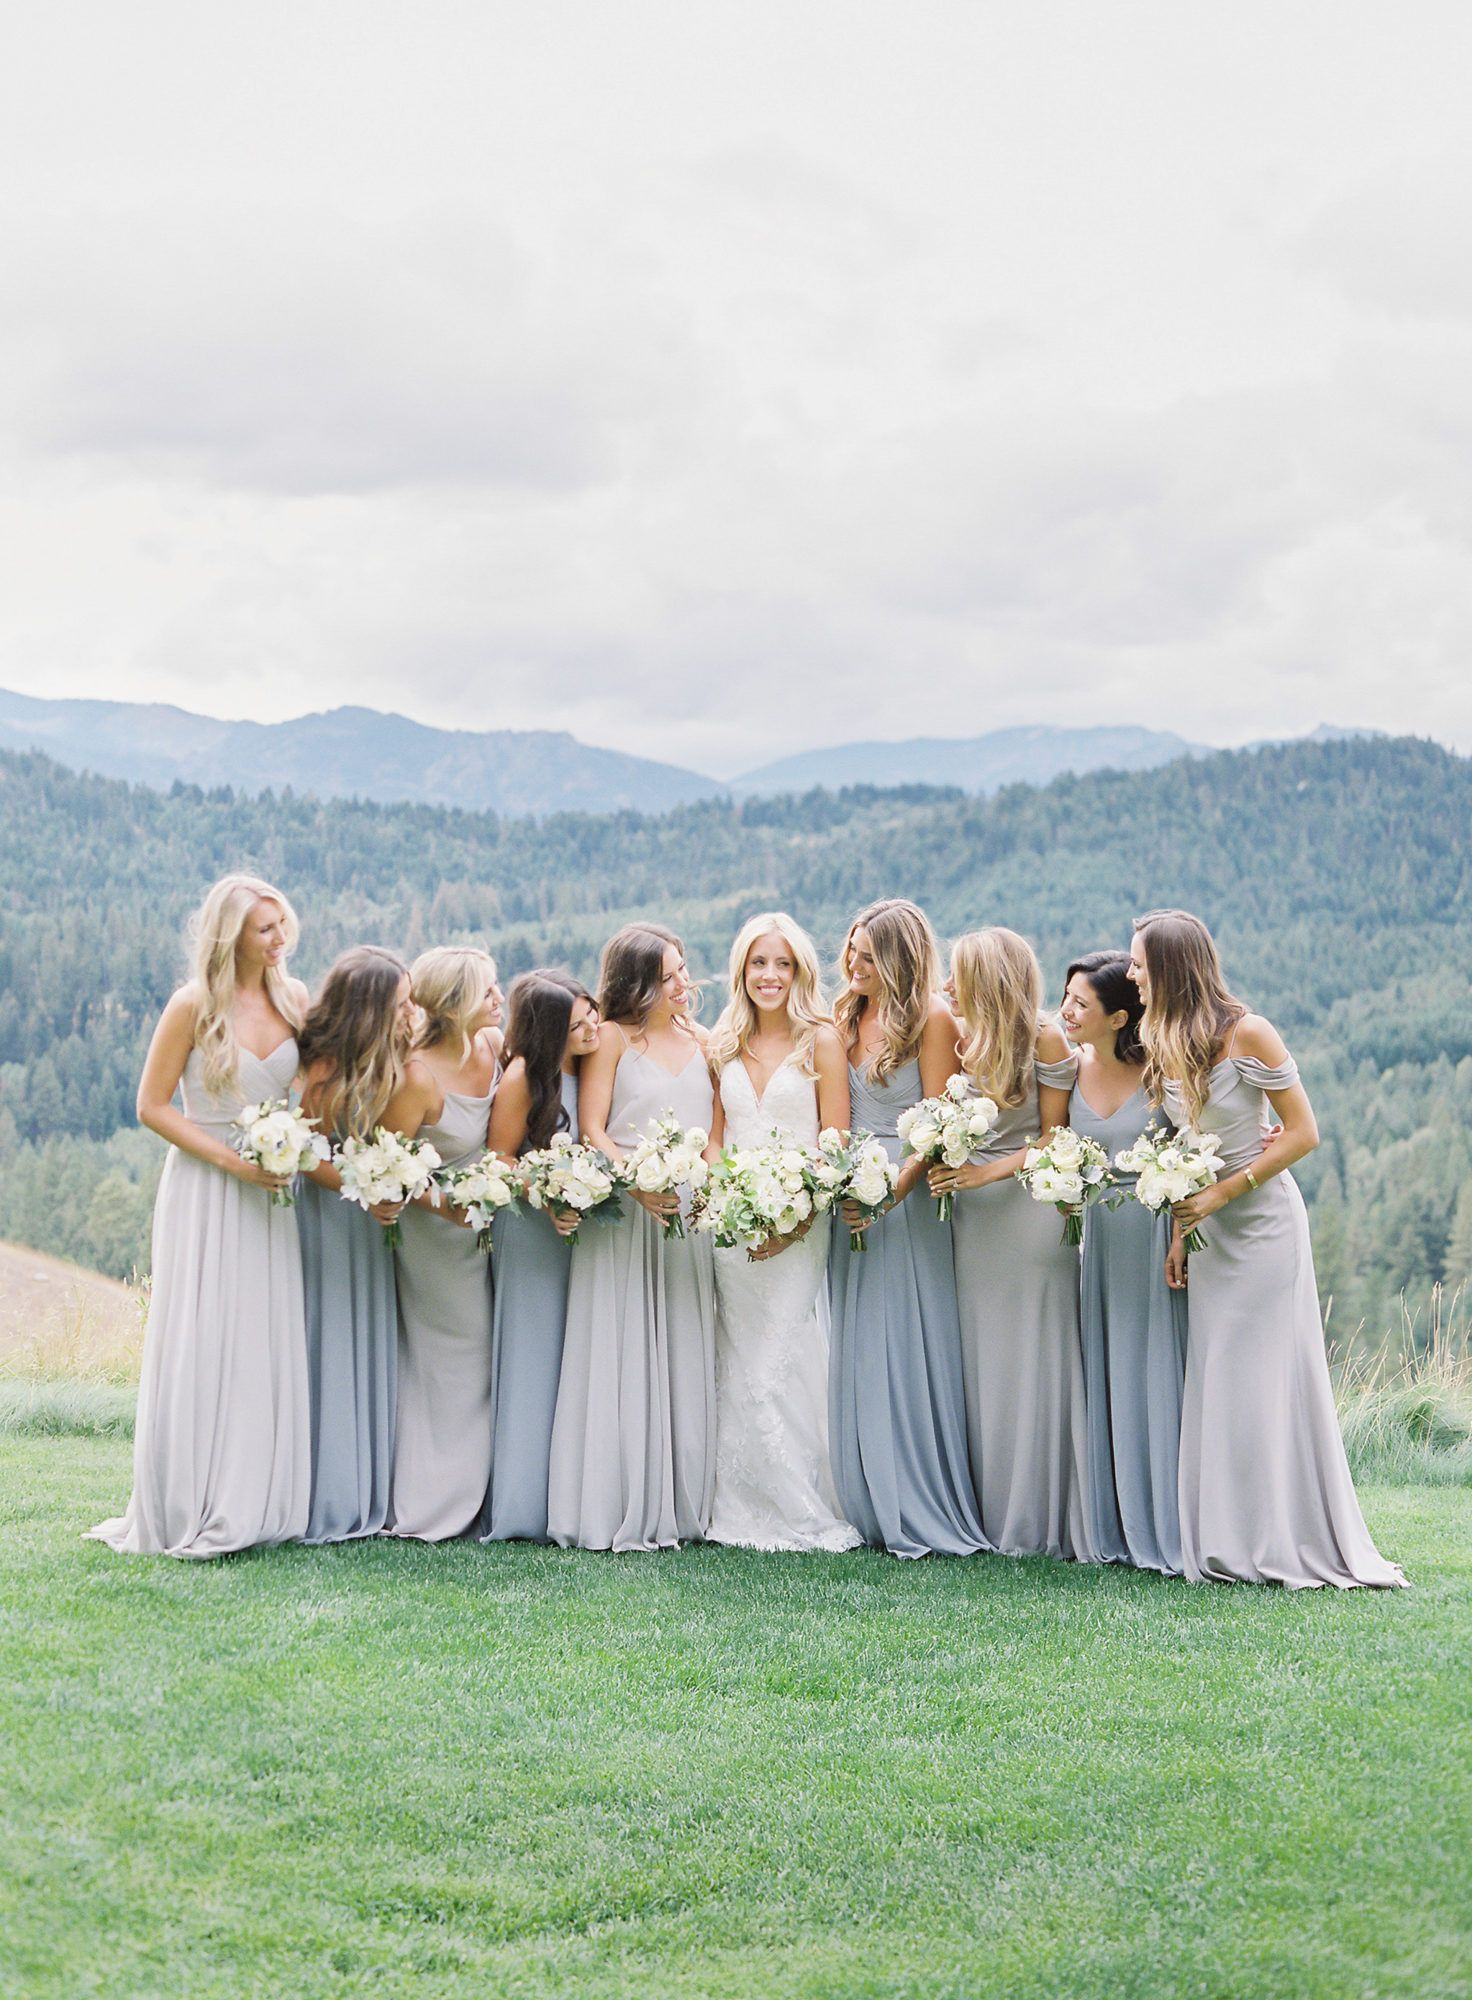 A Beautiful Blue And Cream Mountain Wedding At Suncadia Resort Mountain Wedding Dress Mountain Wedding Color Summer Weddings Bridesmaids [ 2000 x 1472 Pixel ]